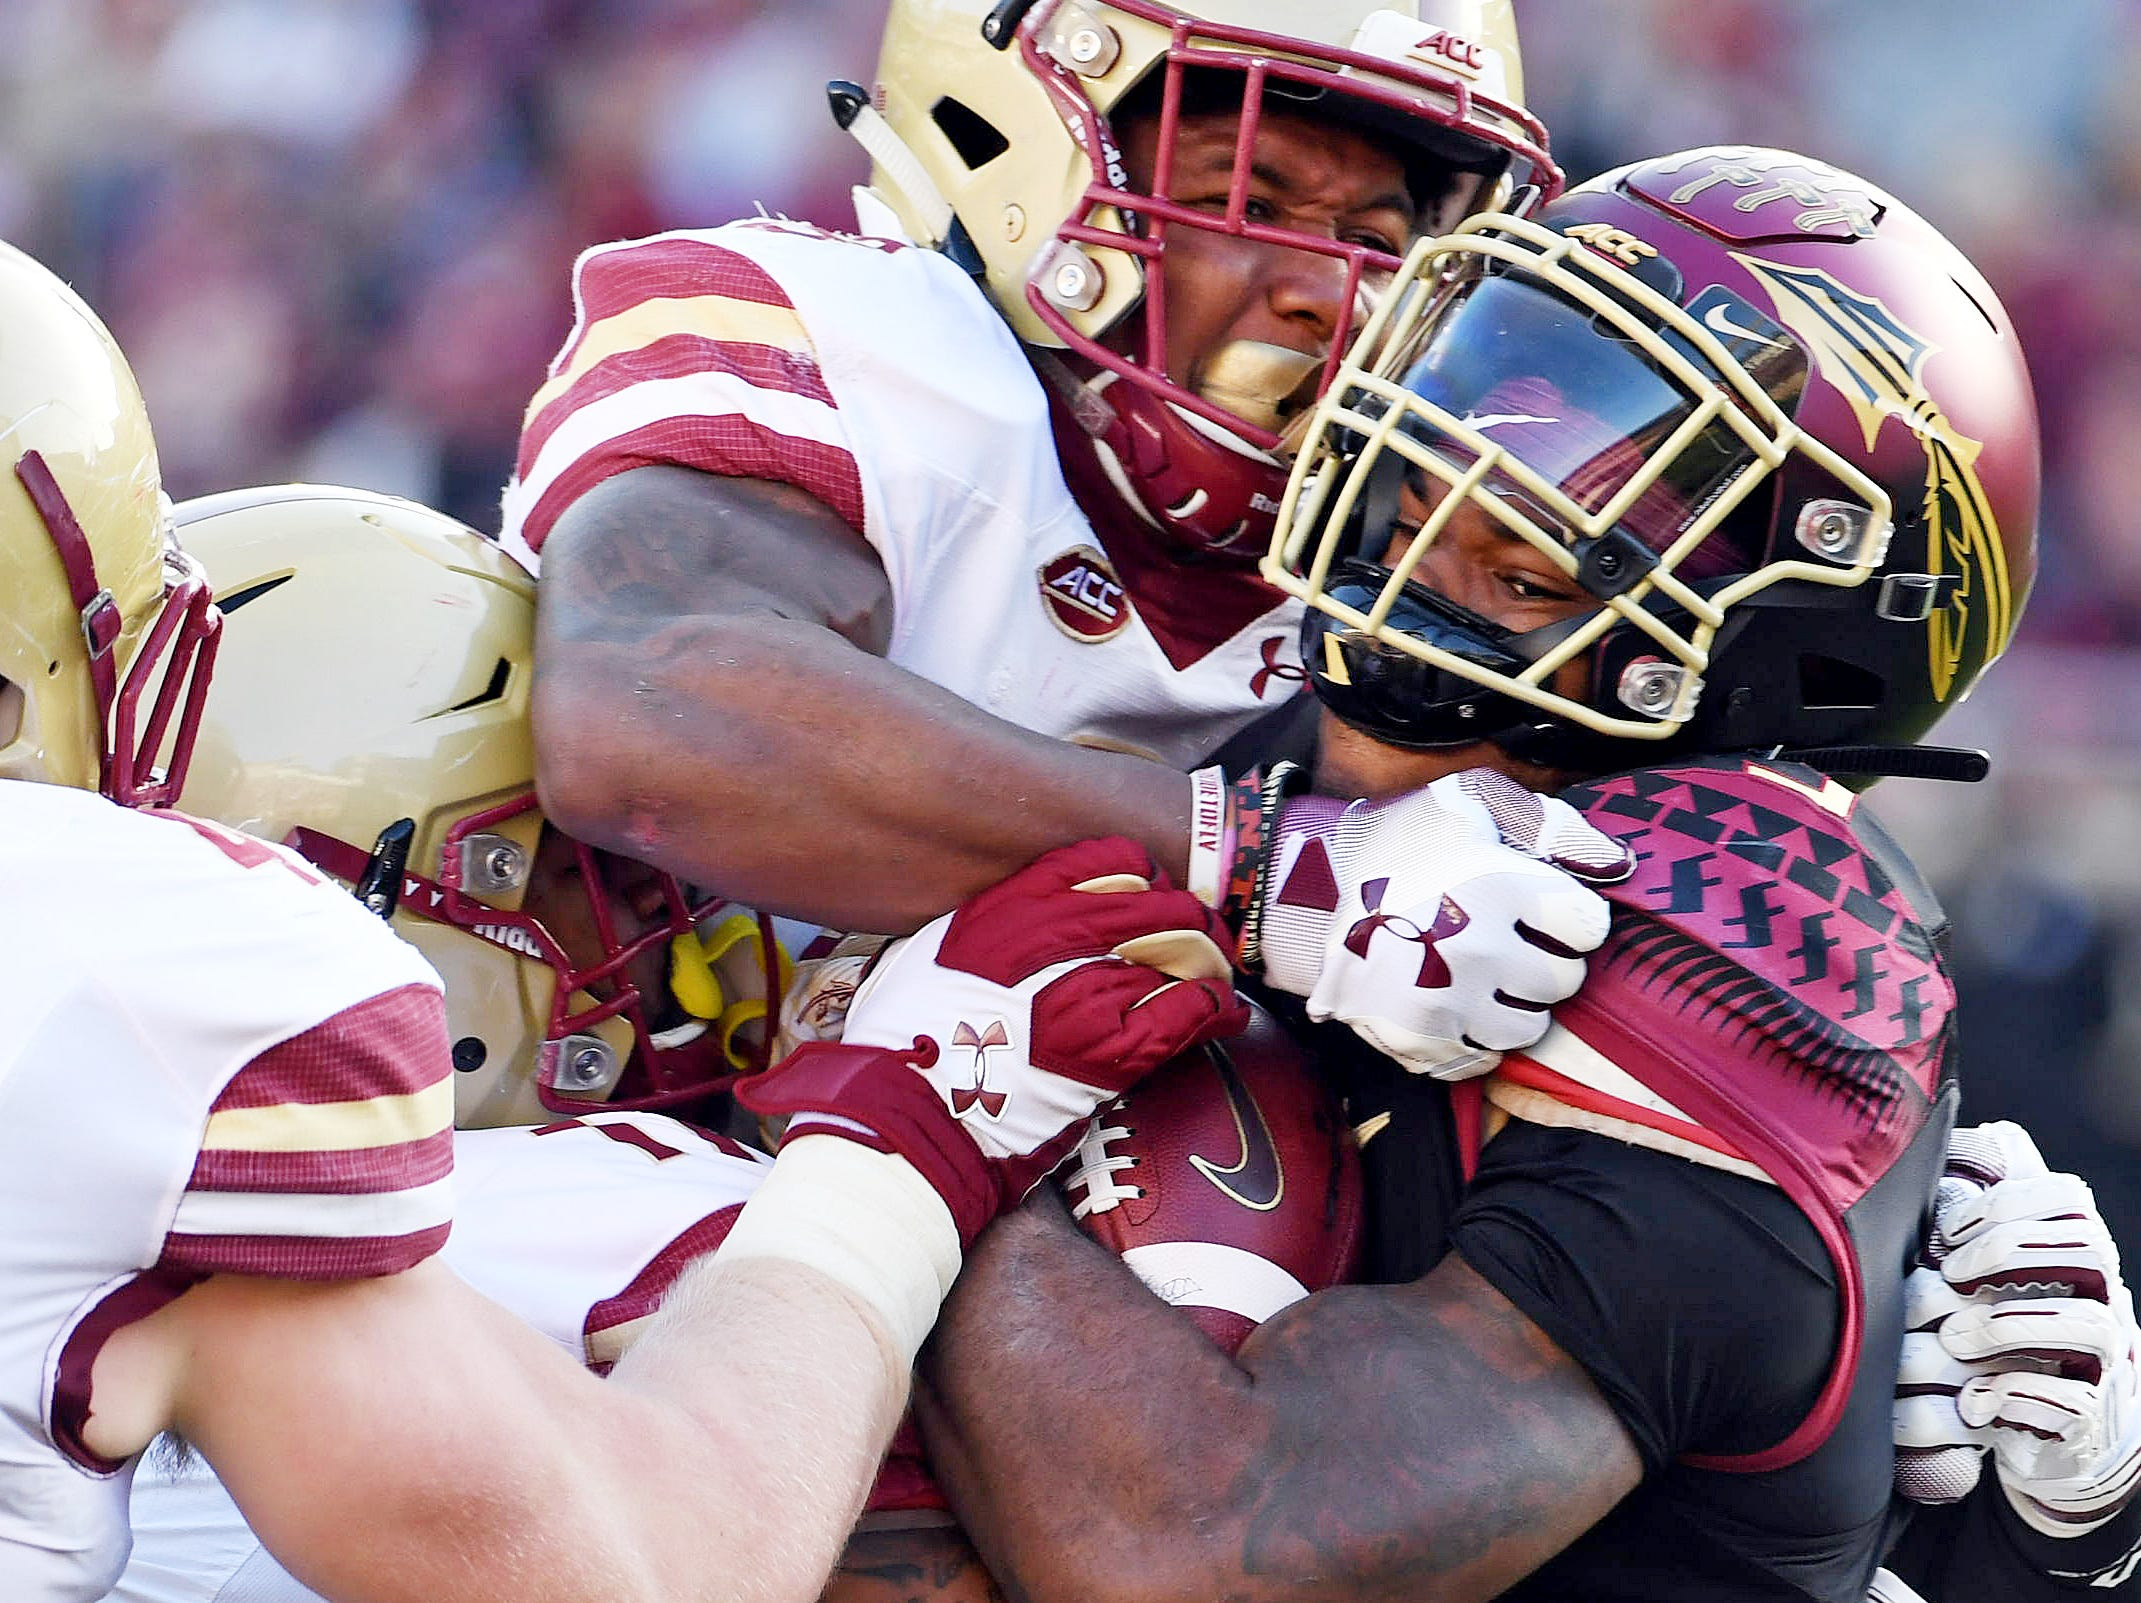 Nov 17, 2018; Tallahassee, FL, USA; Florida State Seminoles running back Cam Akers (3) is tackled by Boston College Eagles defensive back Will Harris (8) during the first half at Doak Campbell Stadium. Mandatory Credit: Melina Myers-USA TODAY Sports